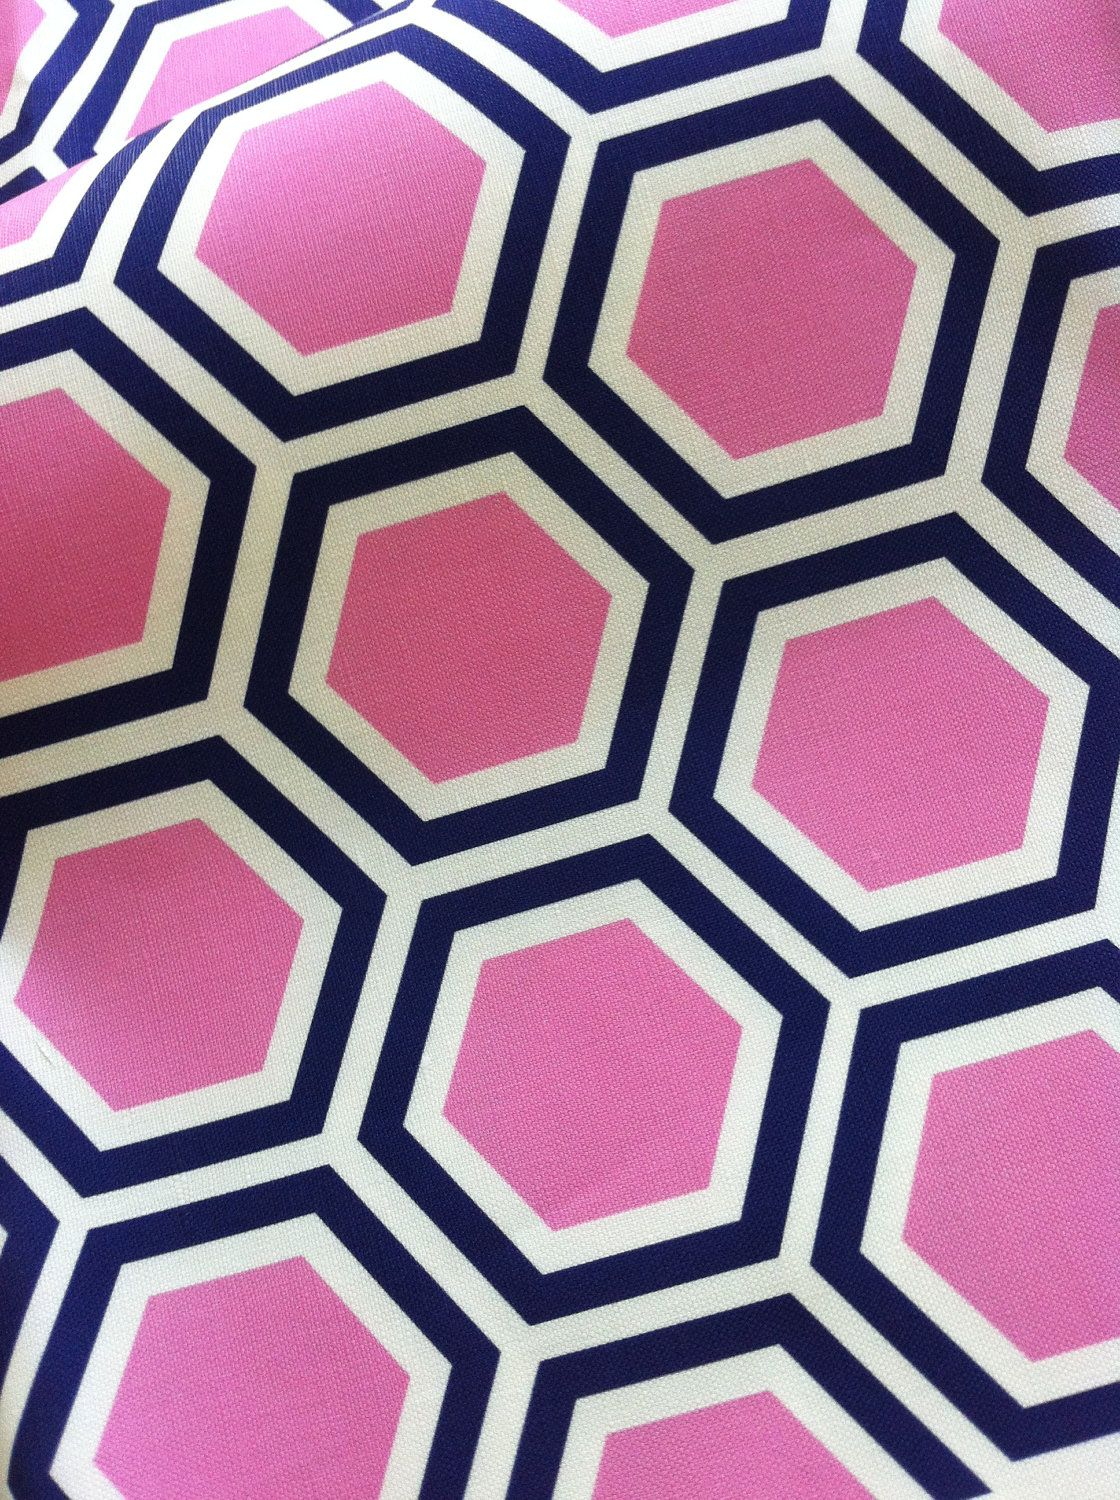 Gentil $42 Tatum In Candy  Original Hexagon Vintage Inspired Home Decor Fabric  Yardage Pink And Navy